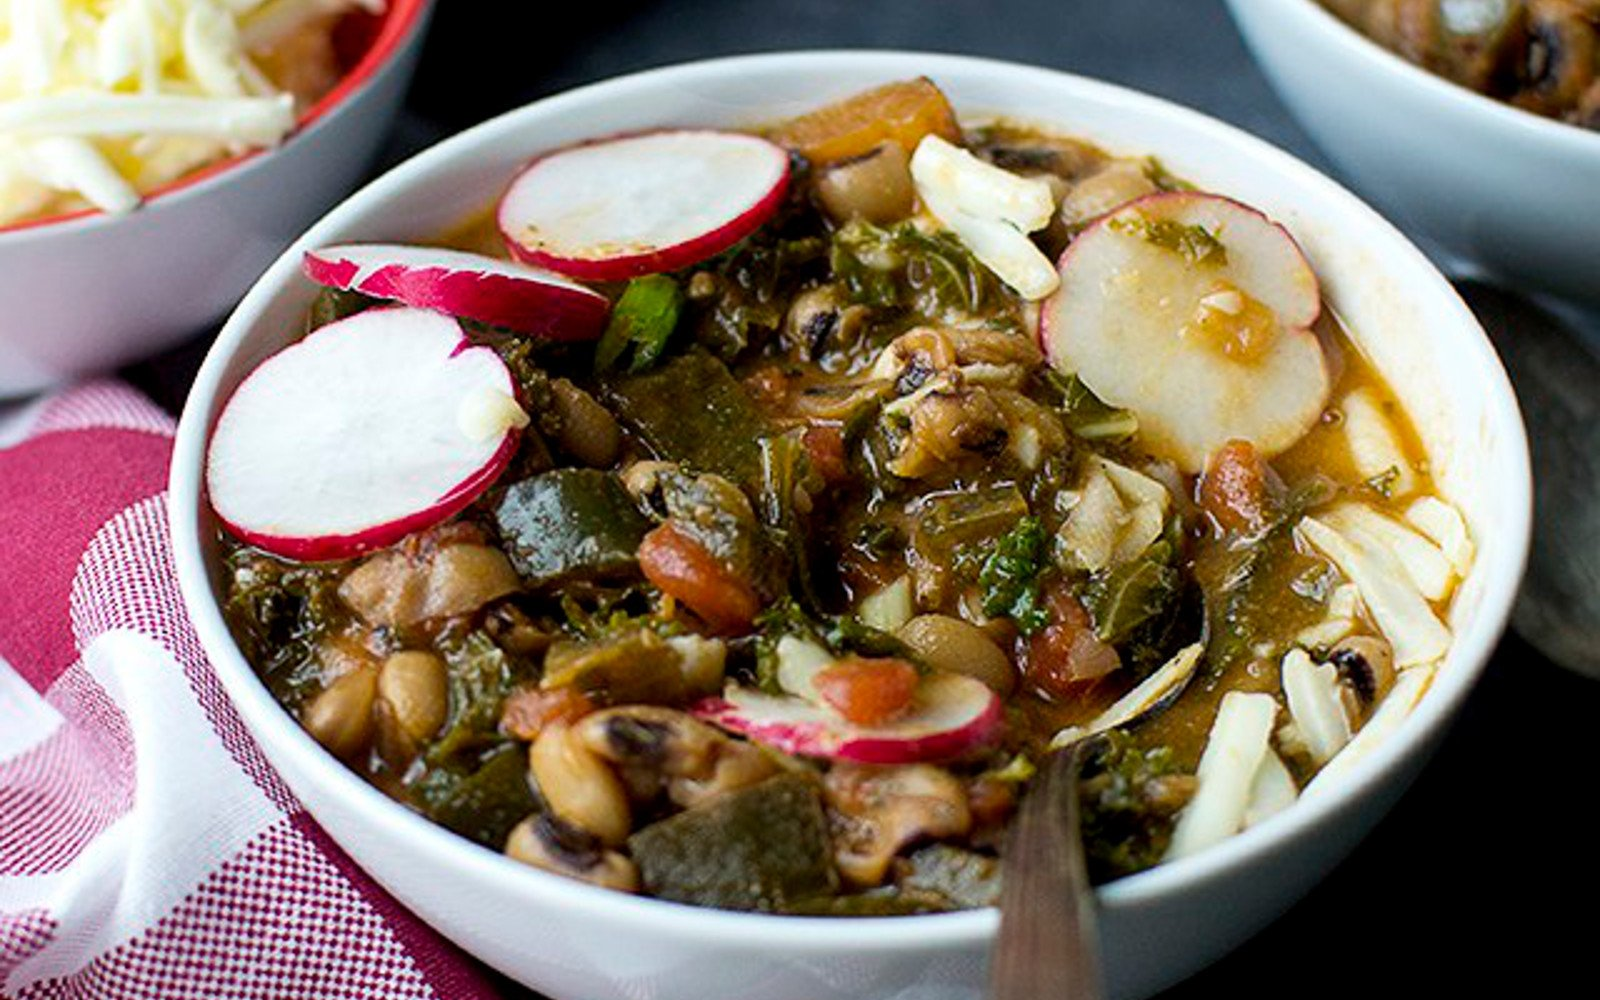 Vegan Gluten-Free Black-Eyed Peas and Kale Chili